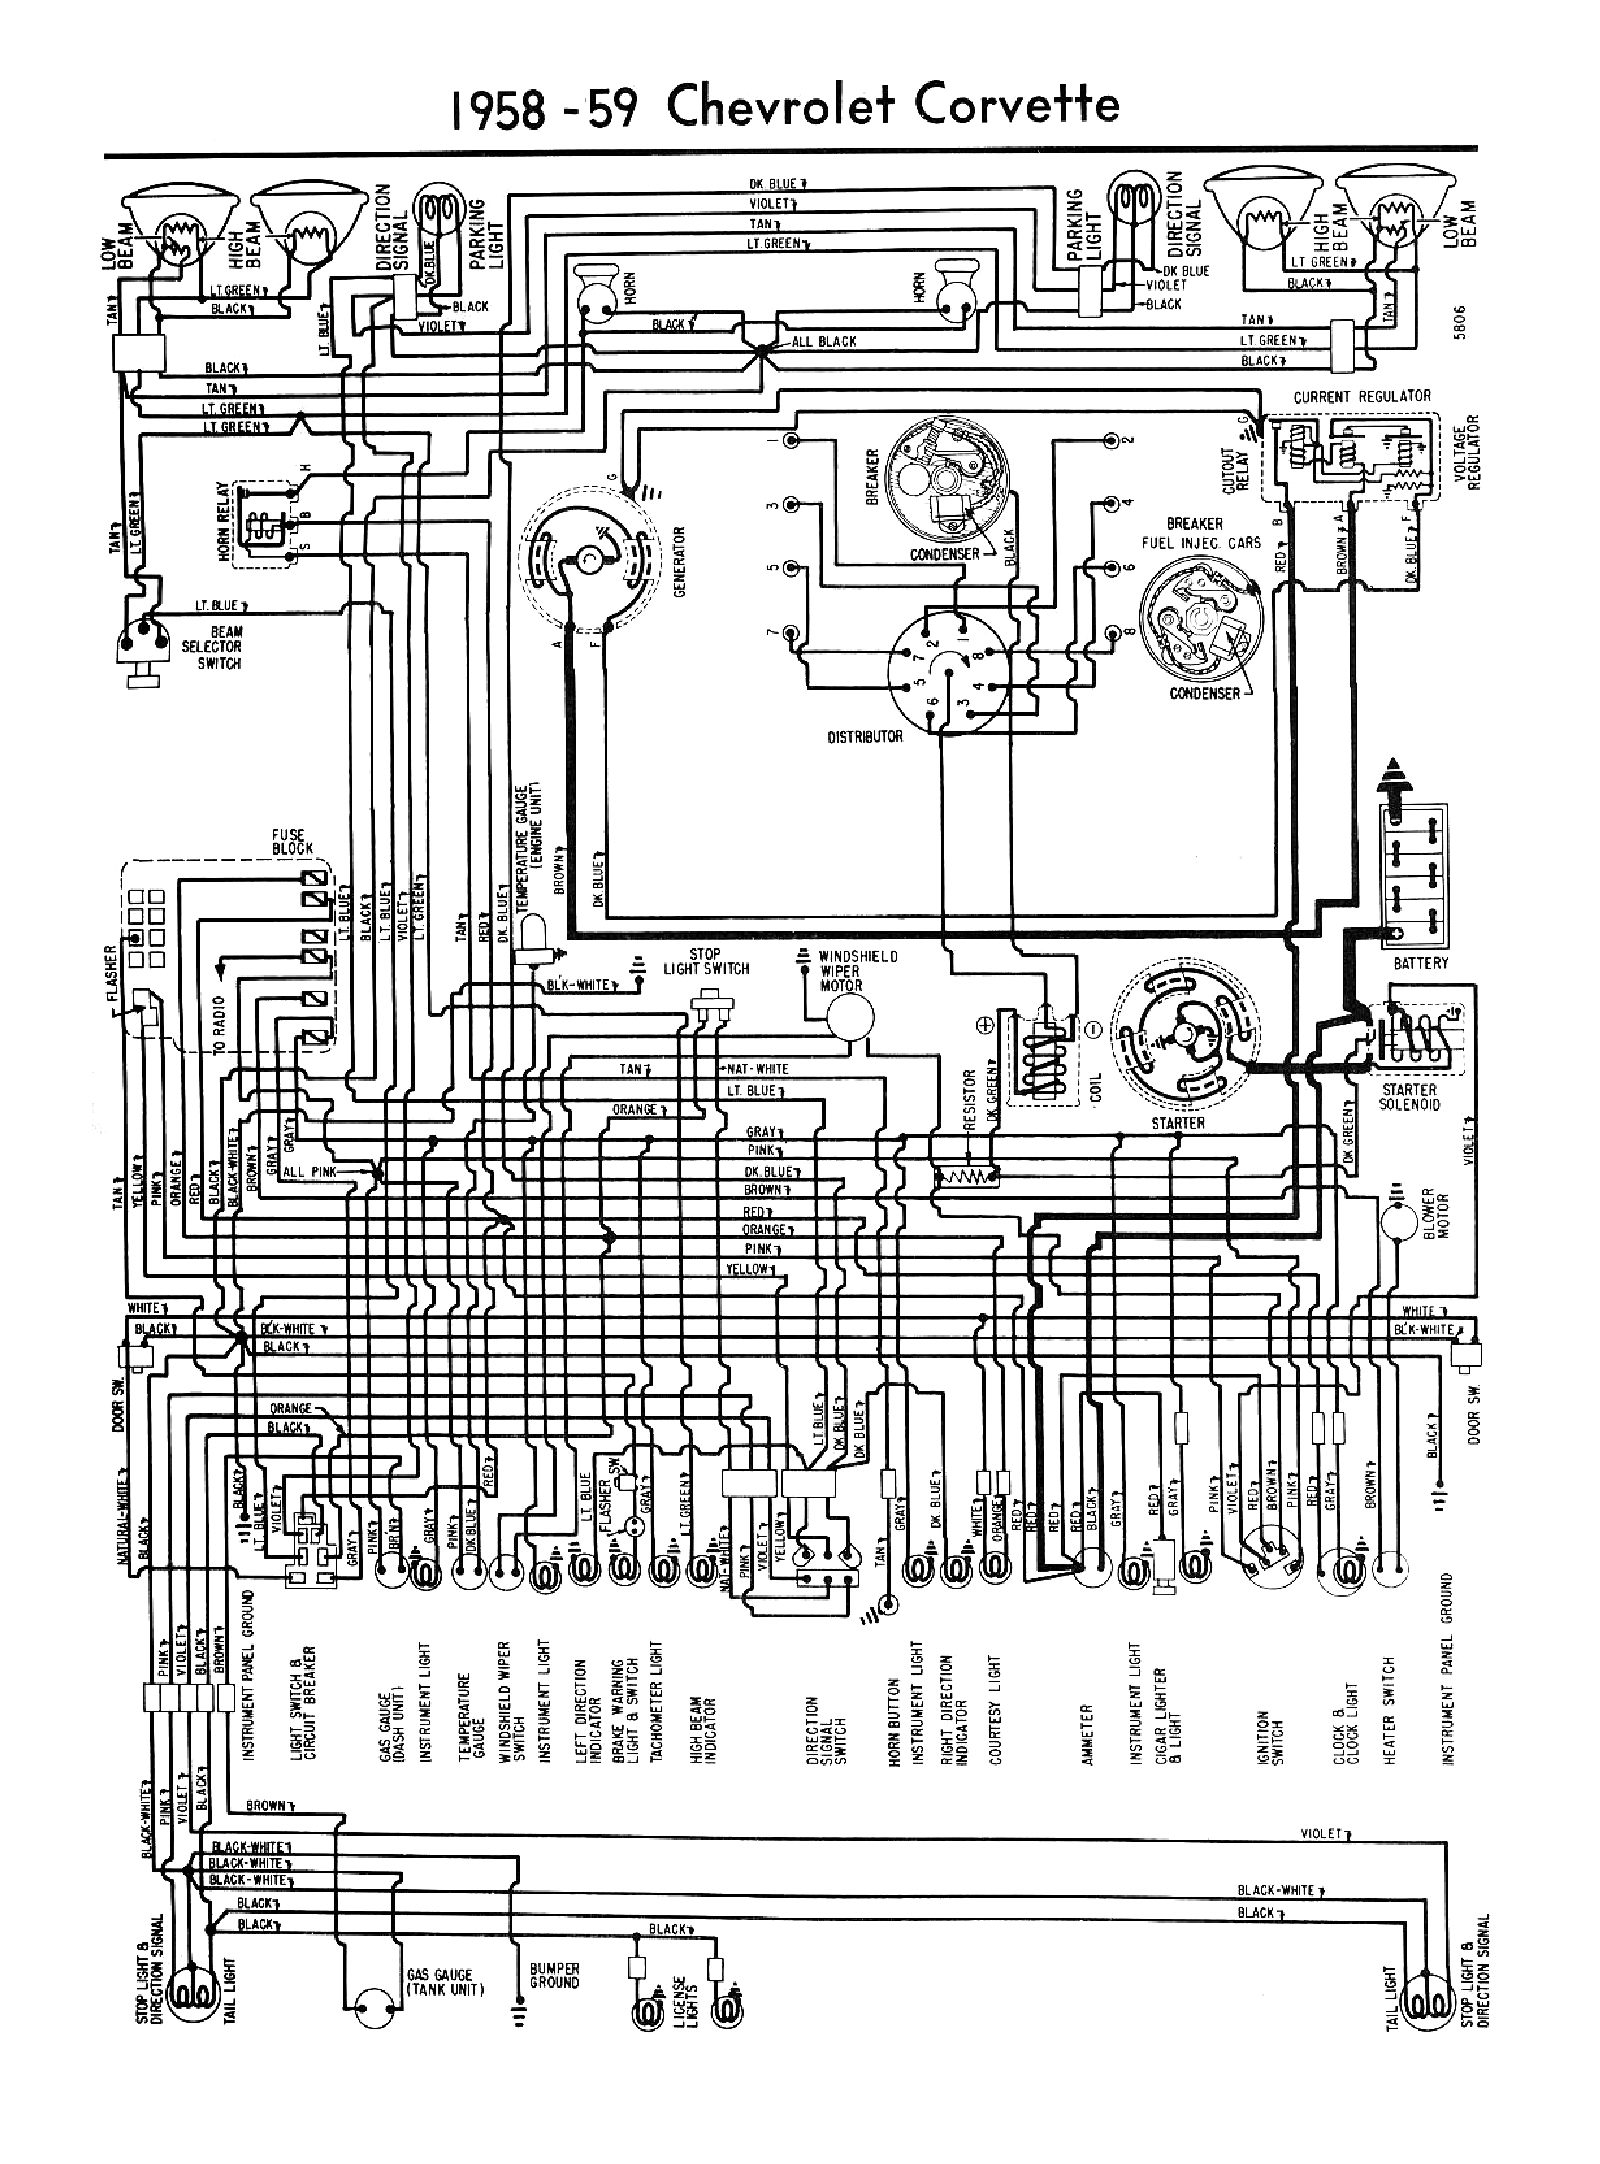 1977 Corvette Antenna Wiring Diagram 1984 Buick Regal Fuse Box Diagram